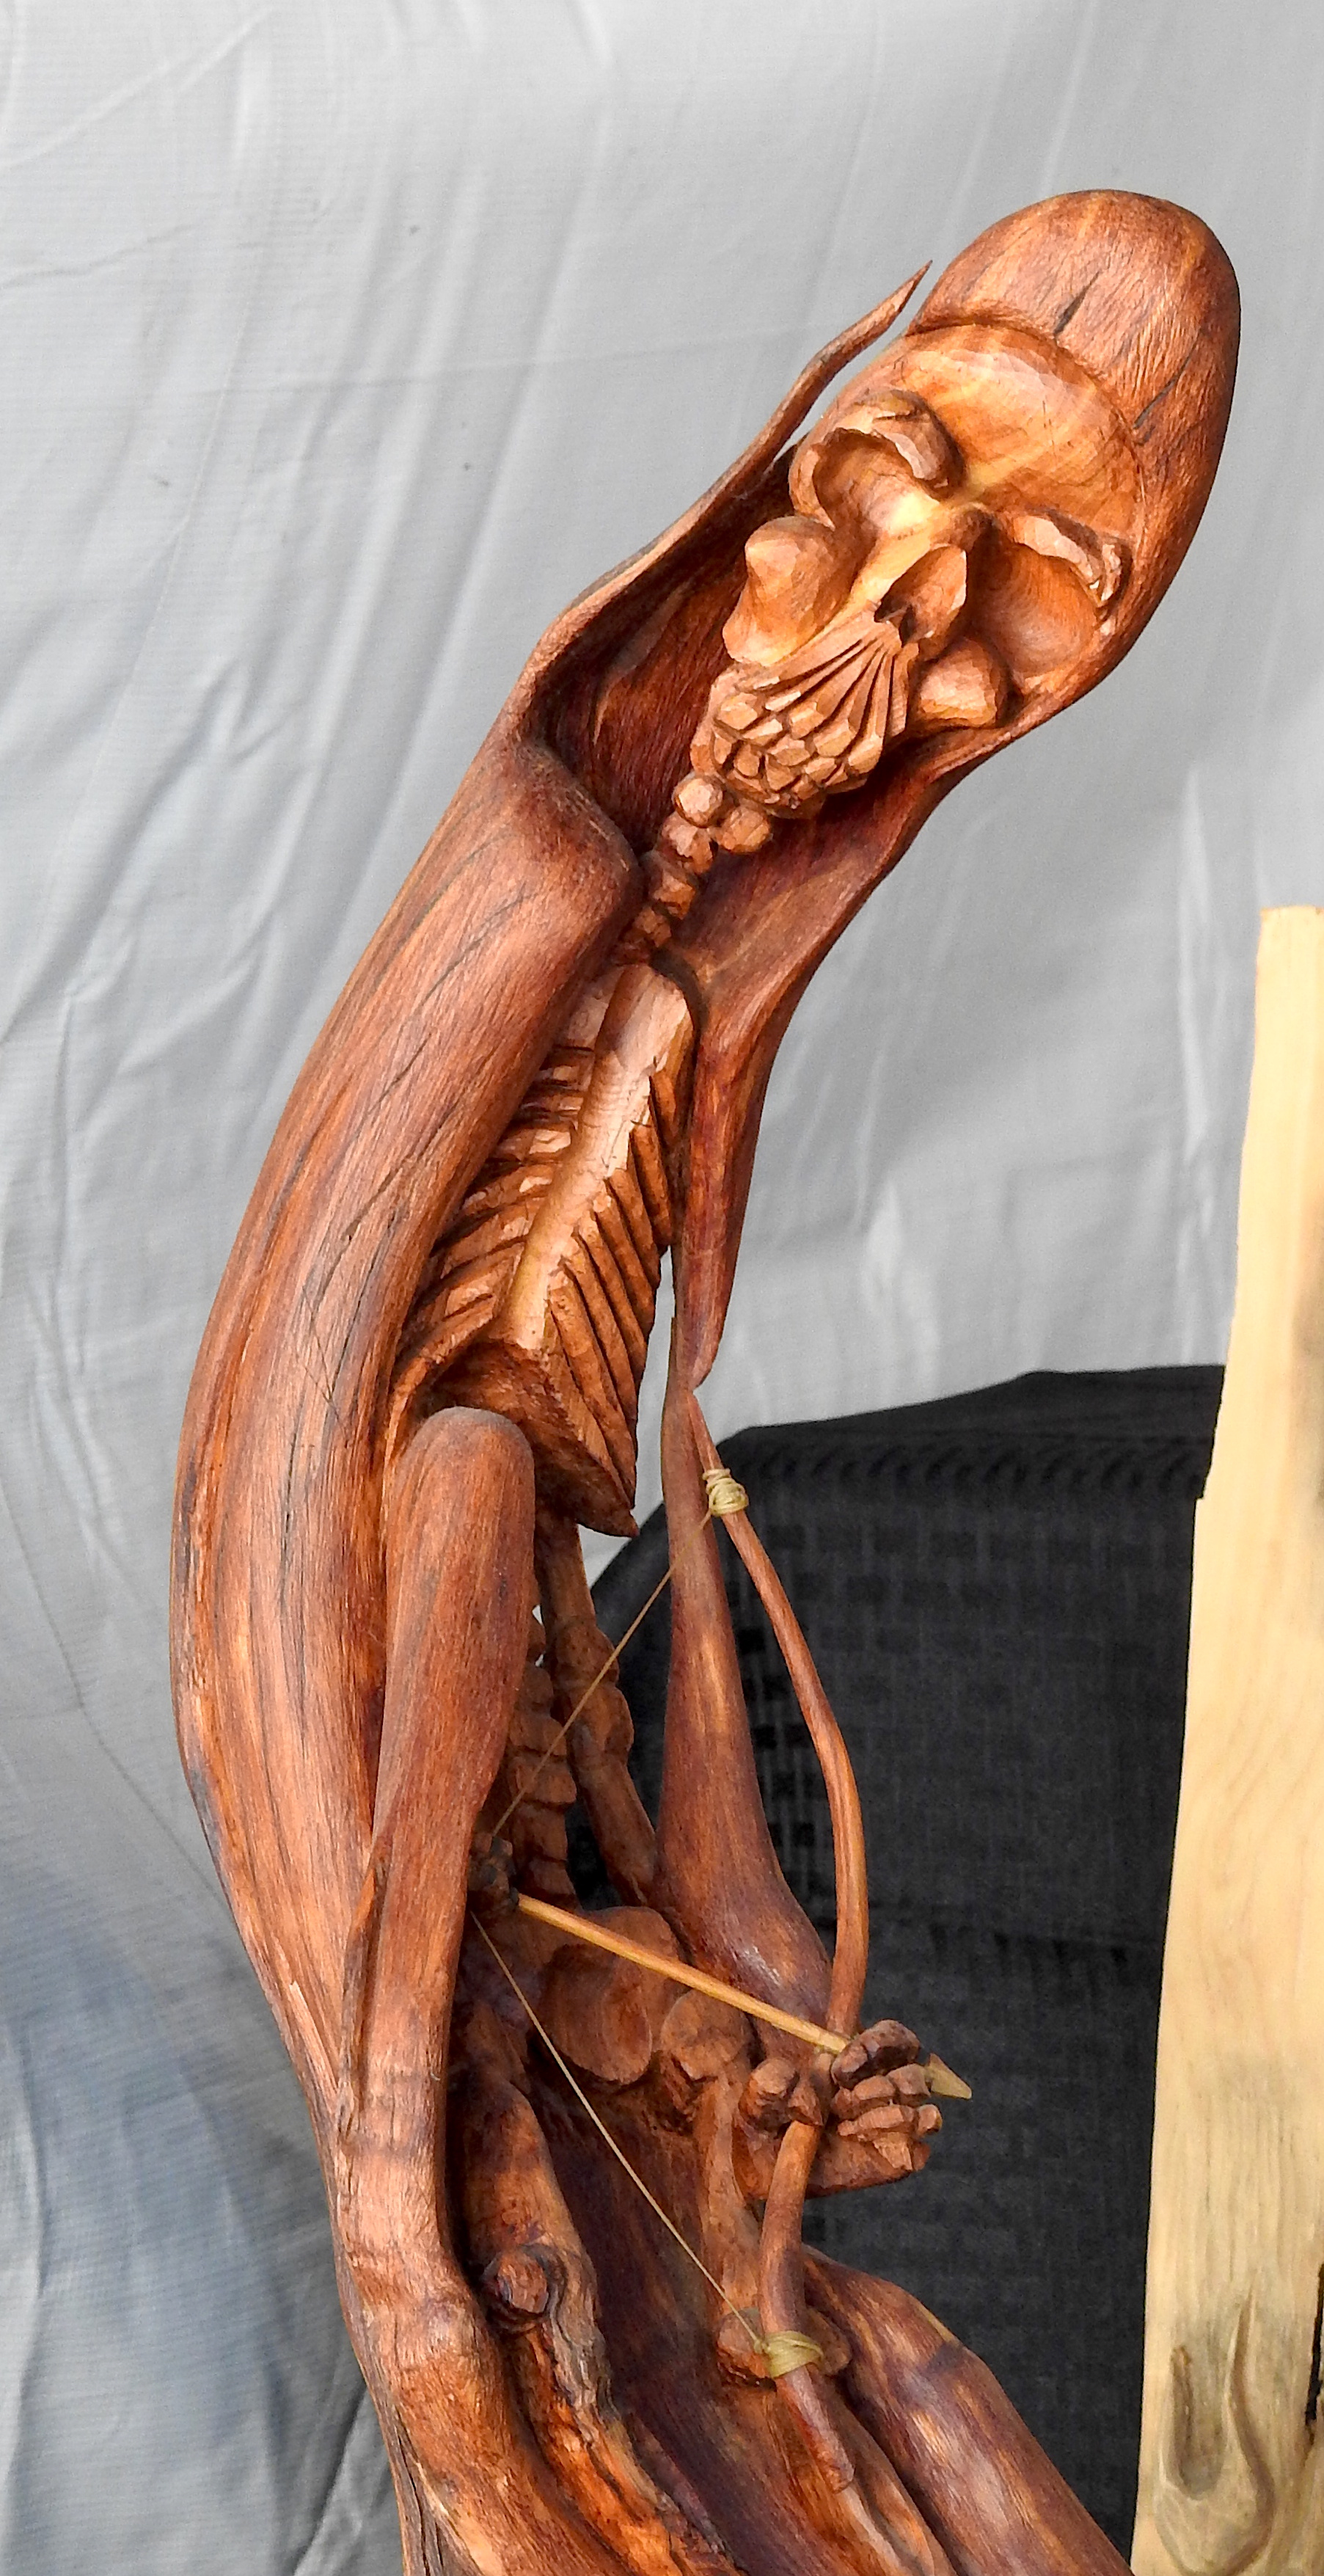 Bultos wood carving